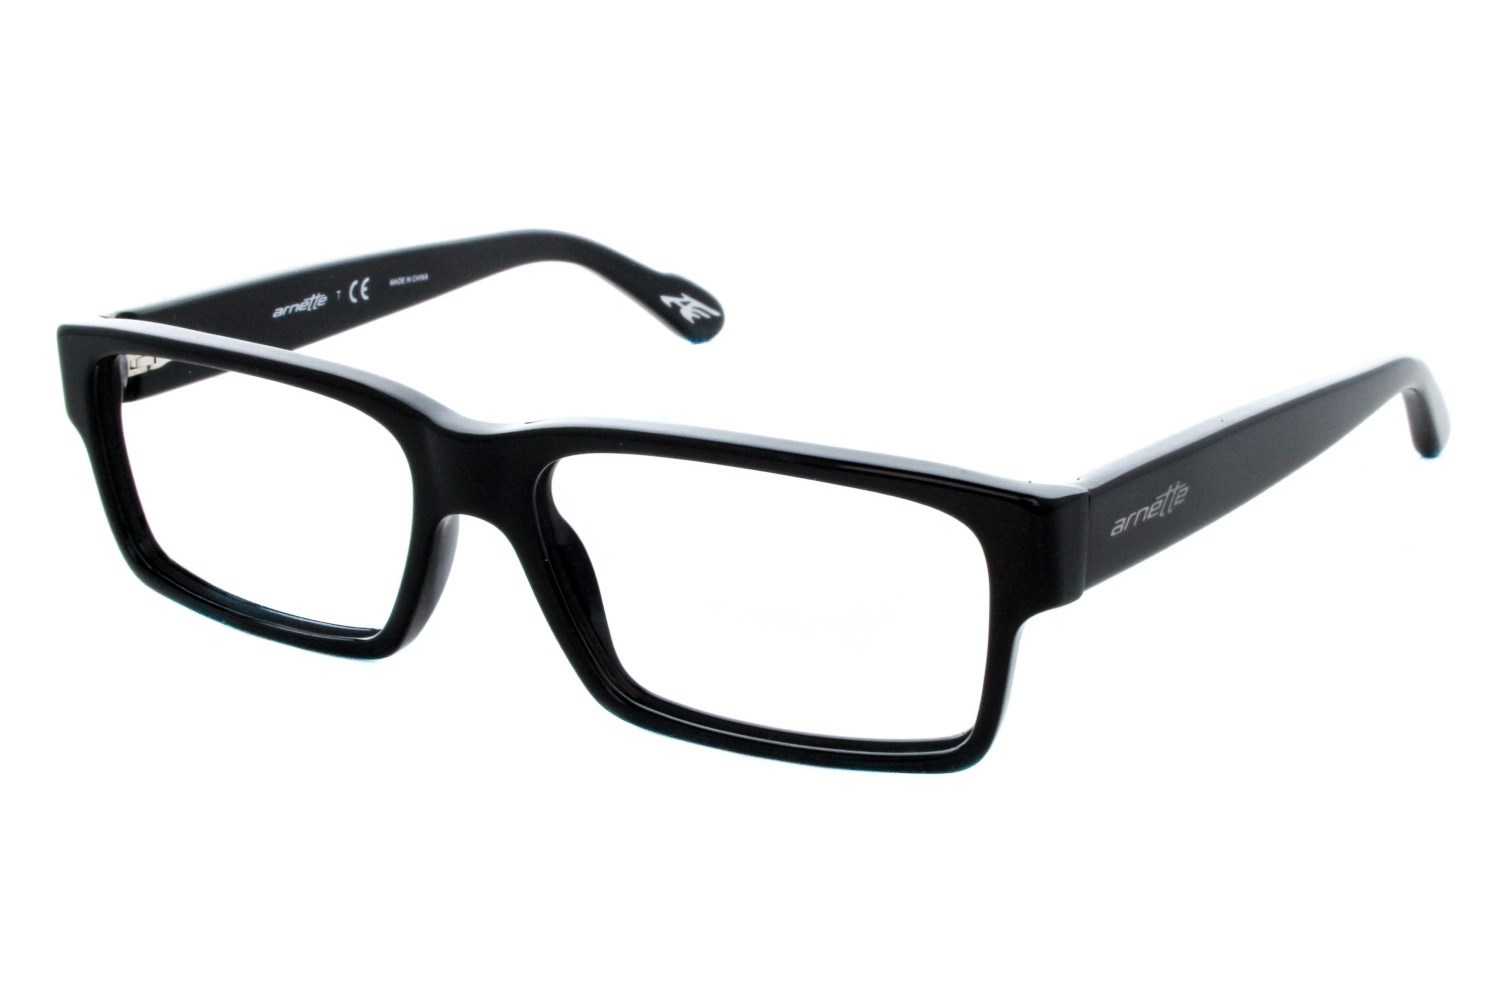 Arnette Frontman 55 Prescription Eyeglasses Frames